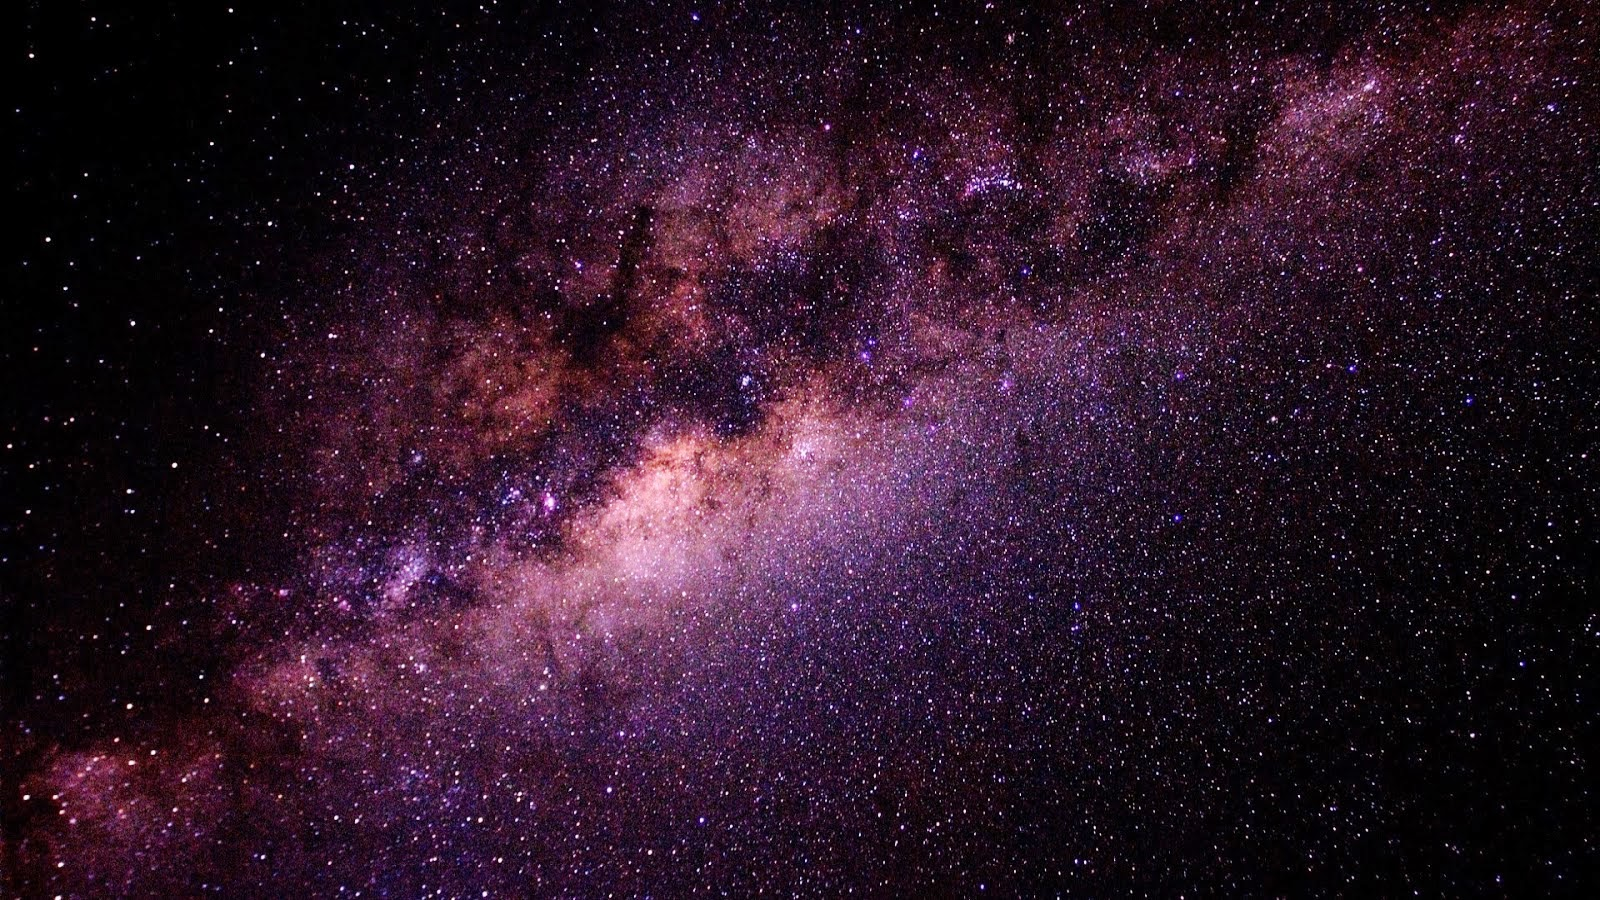 astronomy hd backgrounds 1080p - photo #5